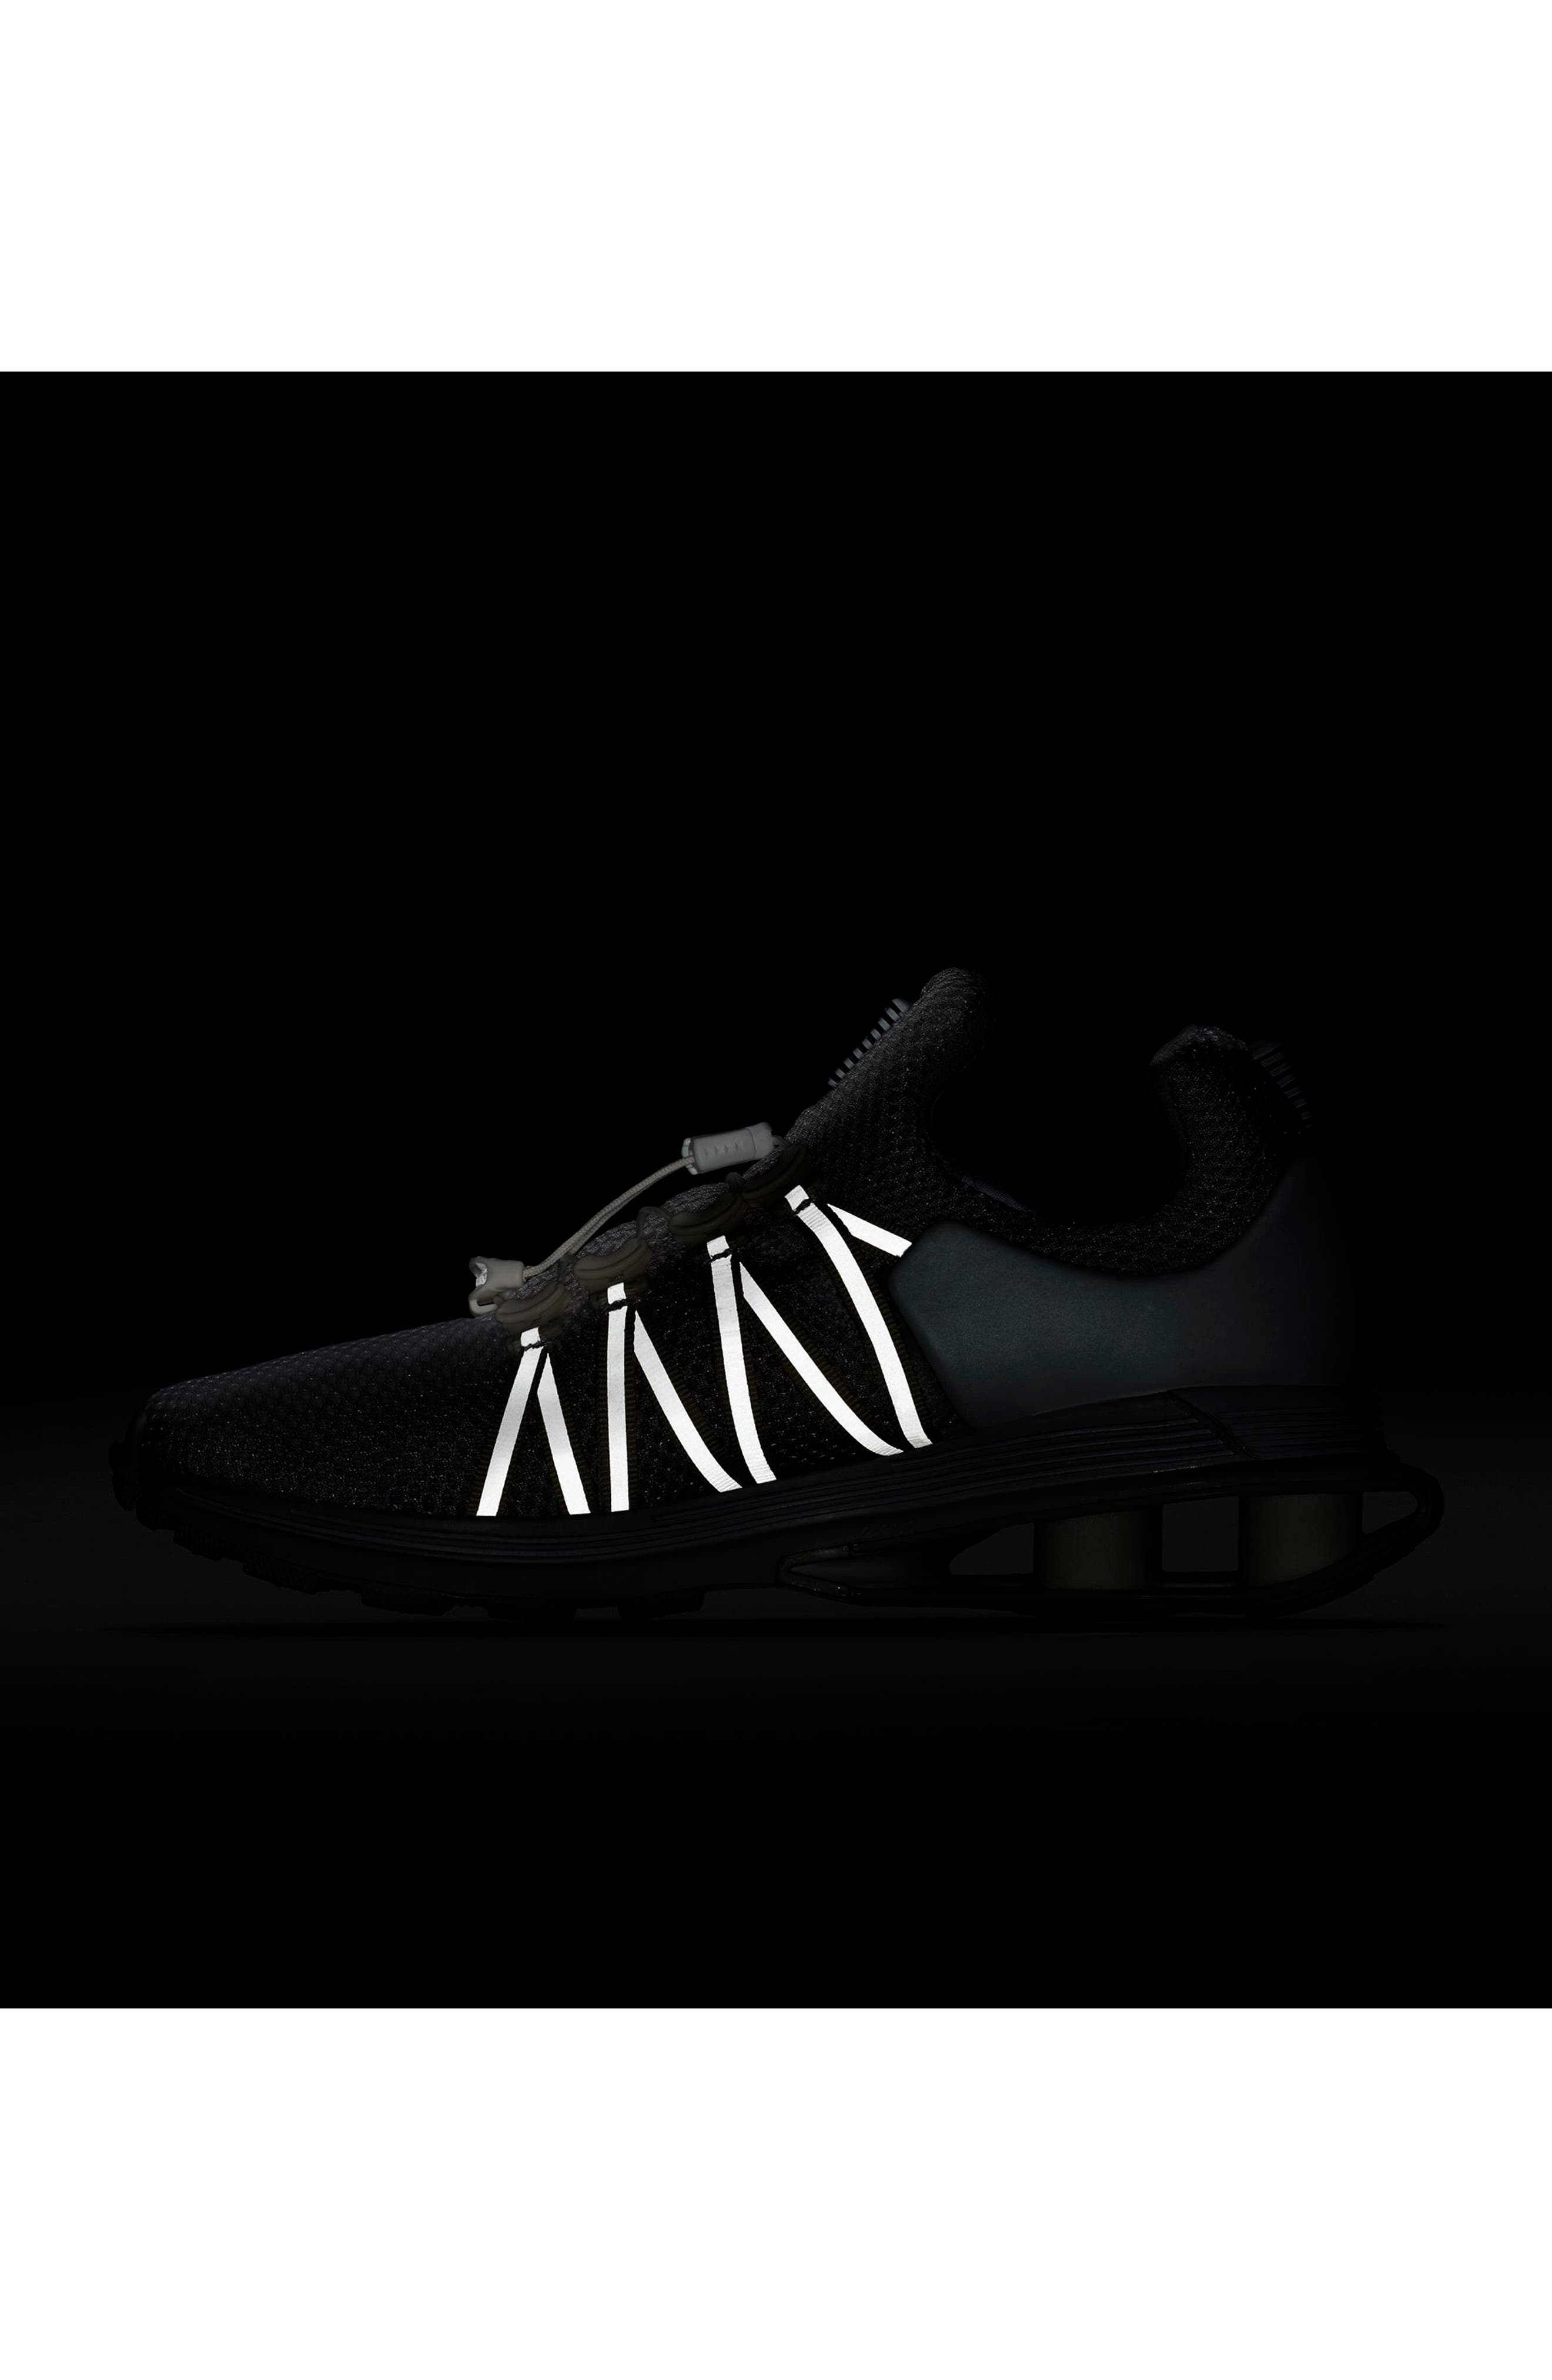 Shox Gravity Sneaker,                             Alternate thumbnail 6, color,                             100